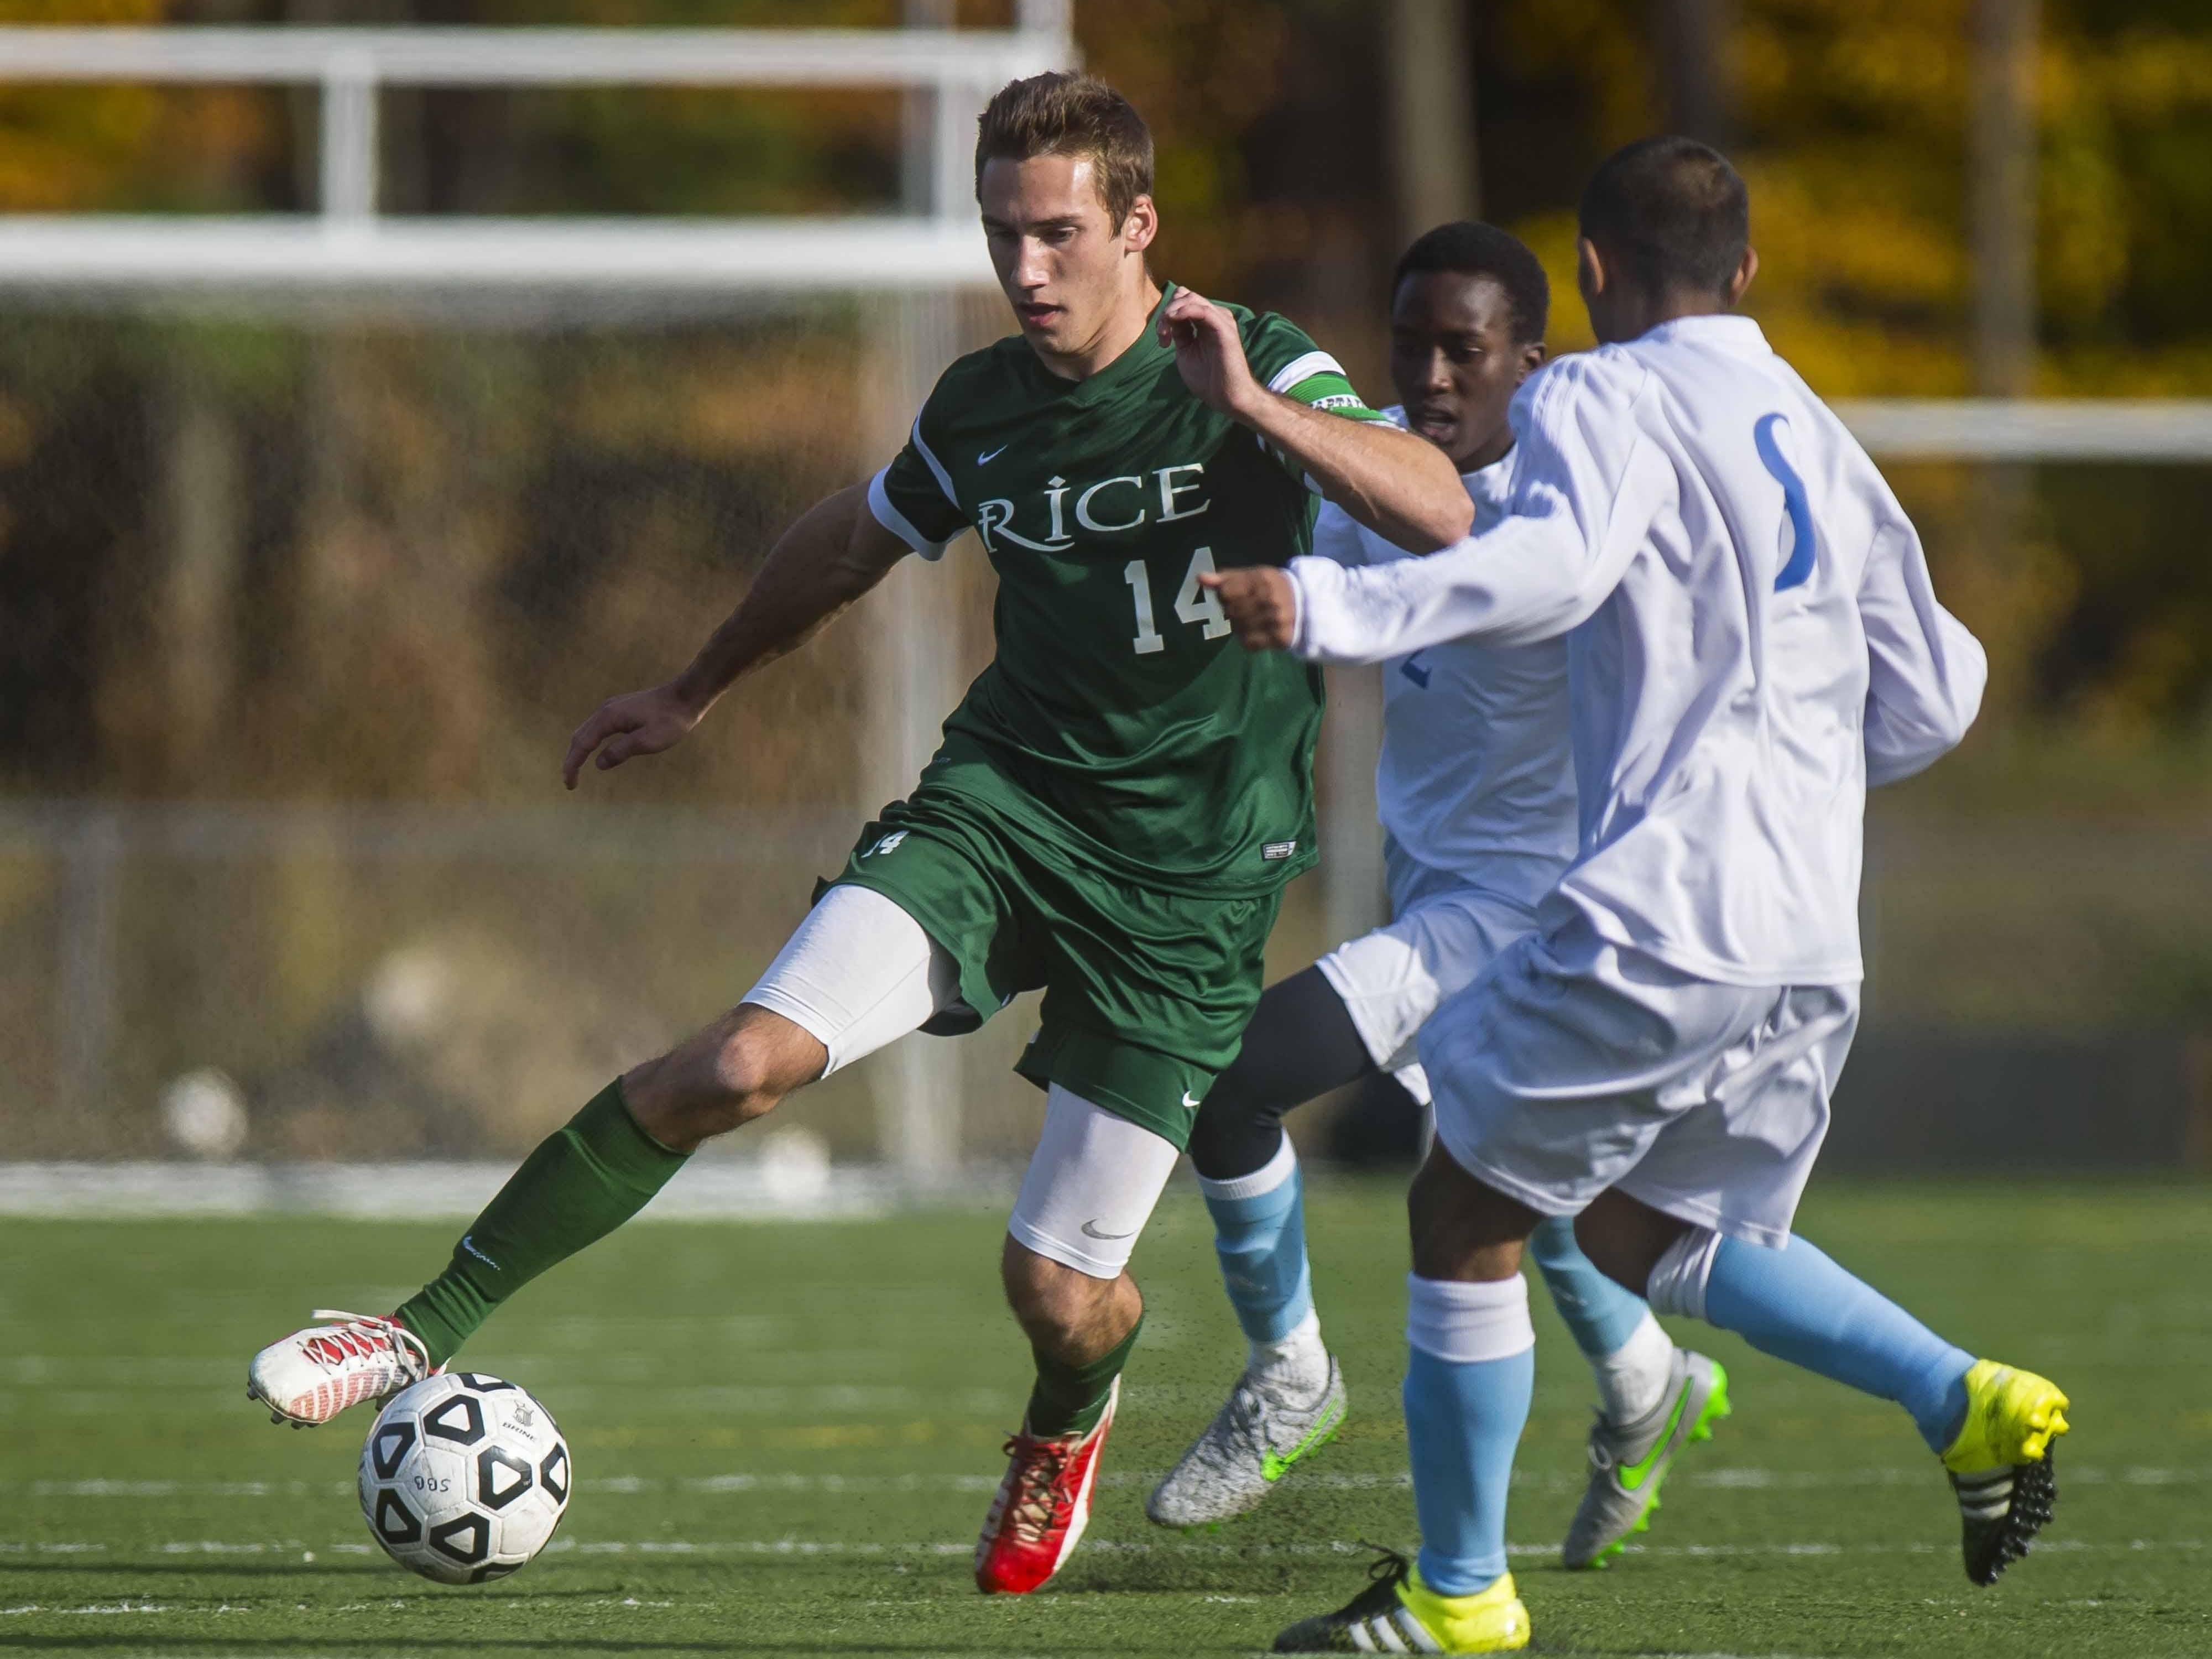 Rice Memorial's Clayton Scott, left, dribbles between South Burlington's Amza Issa and Rakesh Subedi, right, in a boys soccer semifinal earlier this week.